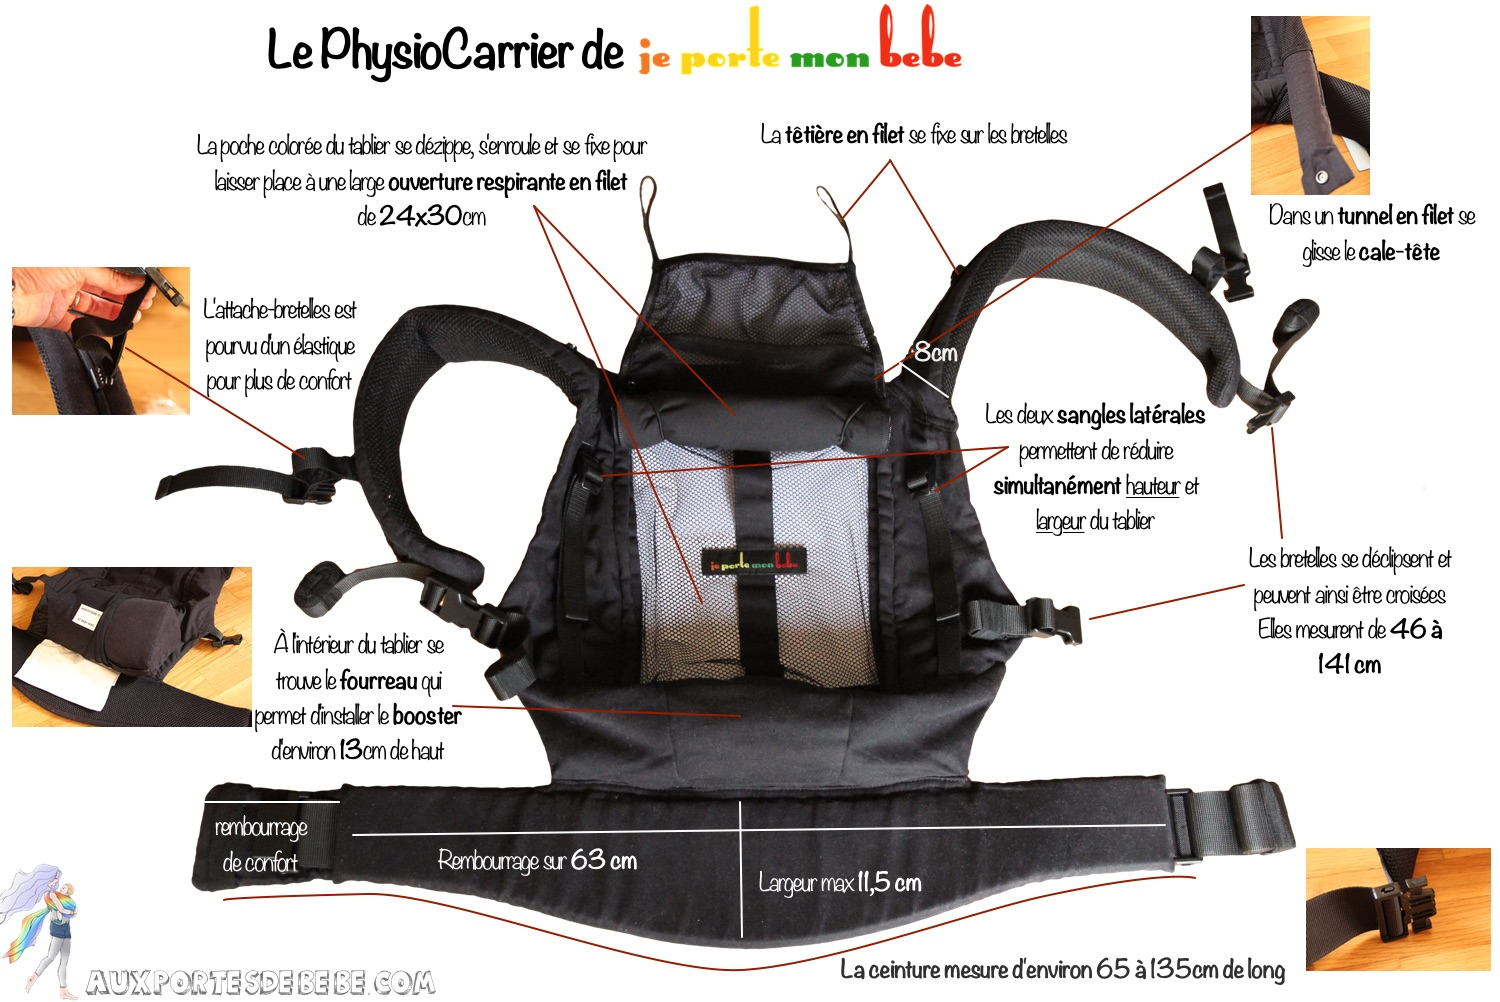 Mesuresphysiocarrierjpg Netas Pinterest - Porte bebe physiocarrier